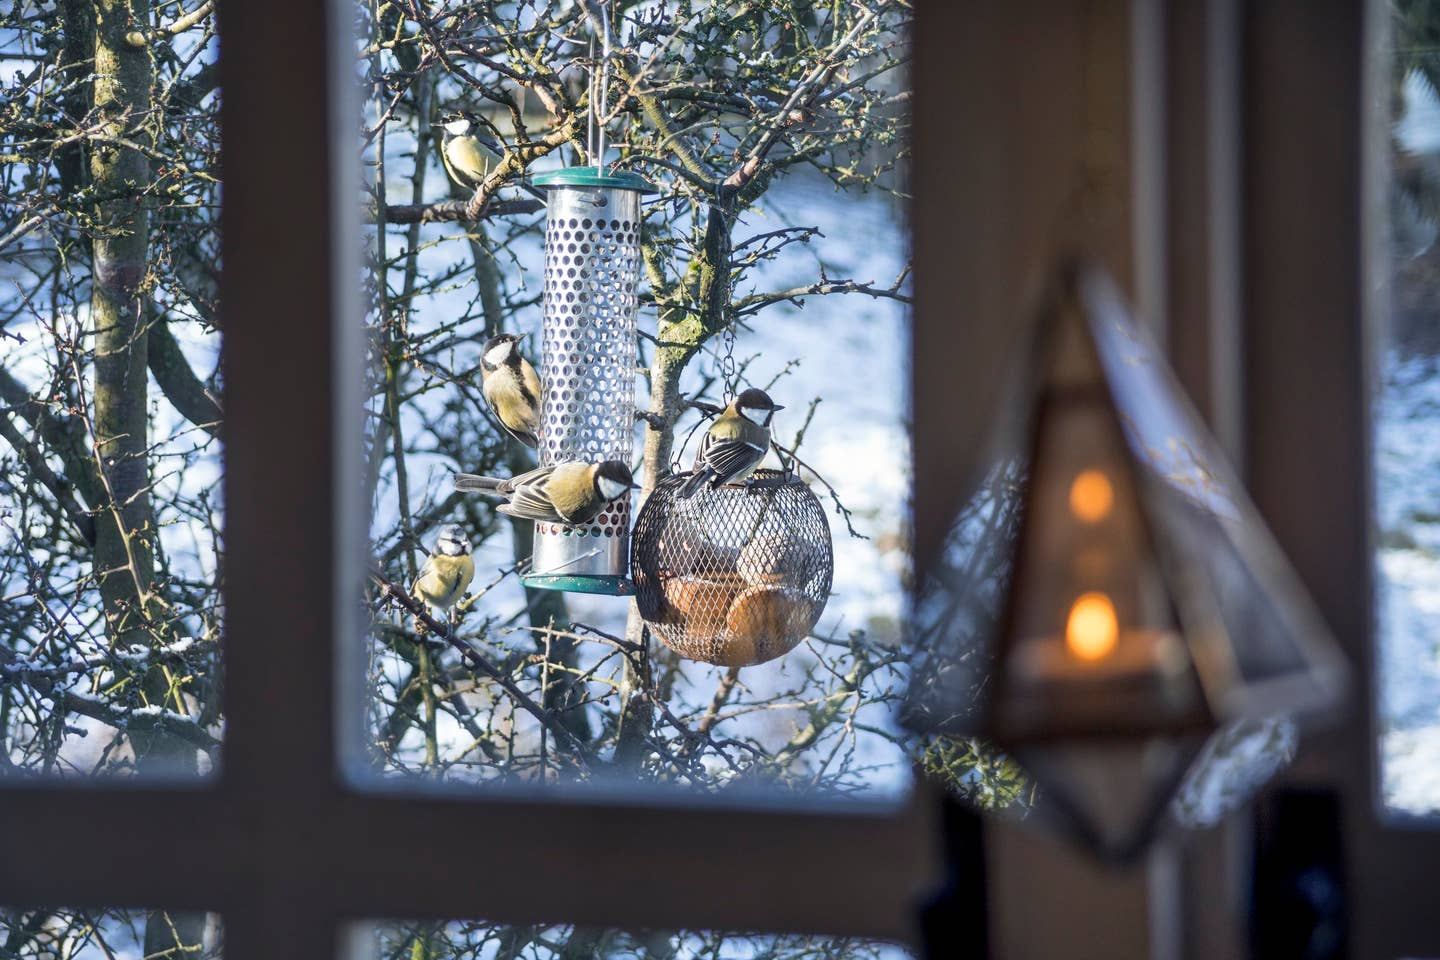 birds-on-birdfeeder-in-a-snowy-winter-scene-looking-through-a-window